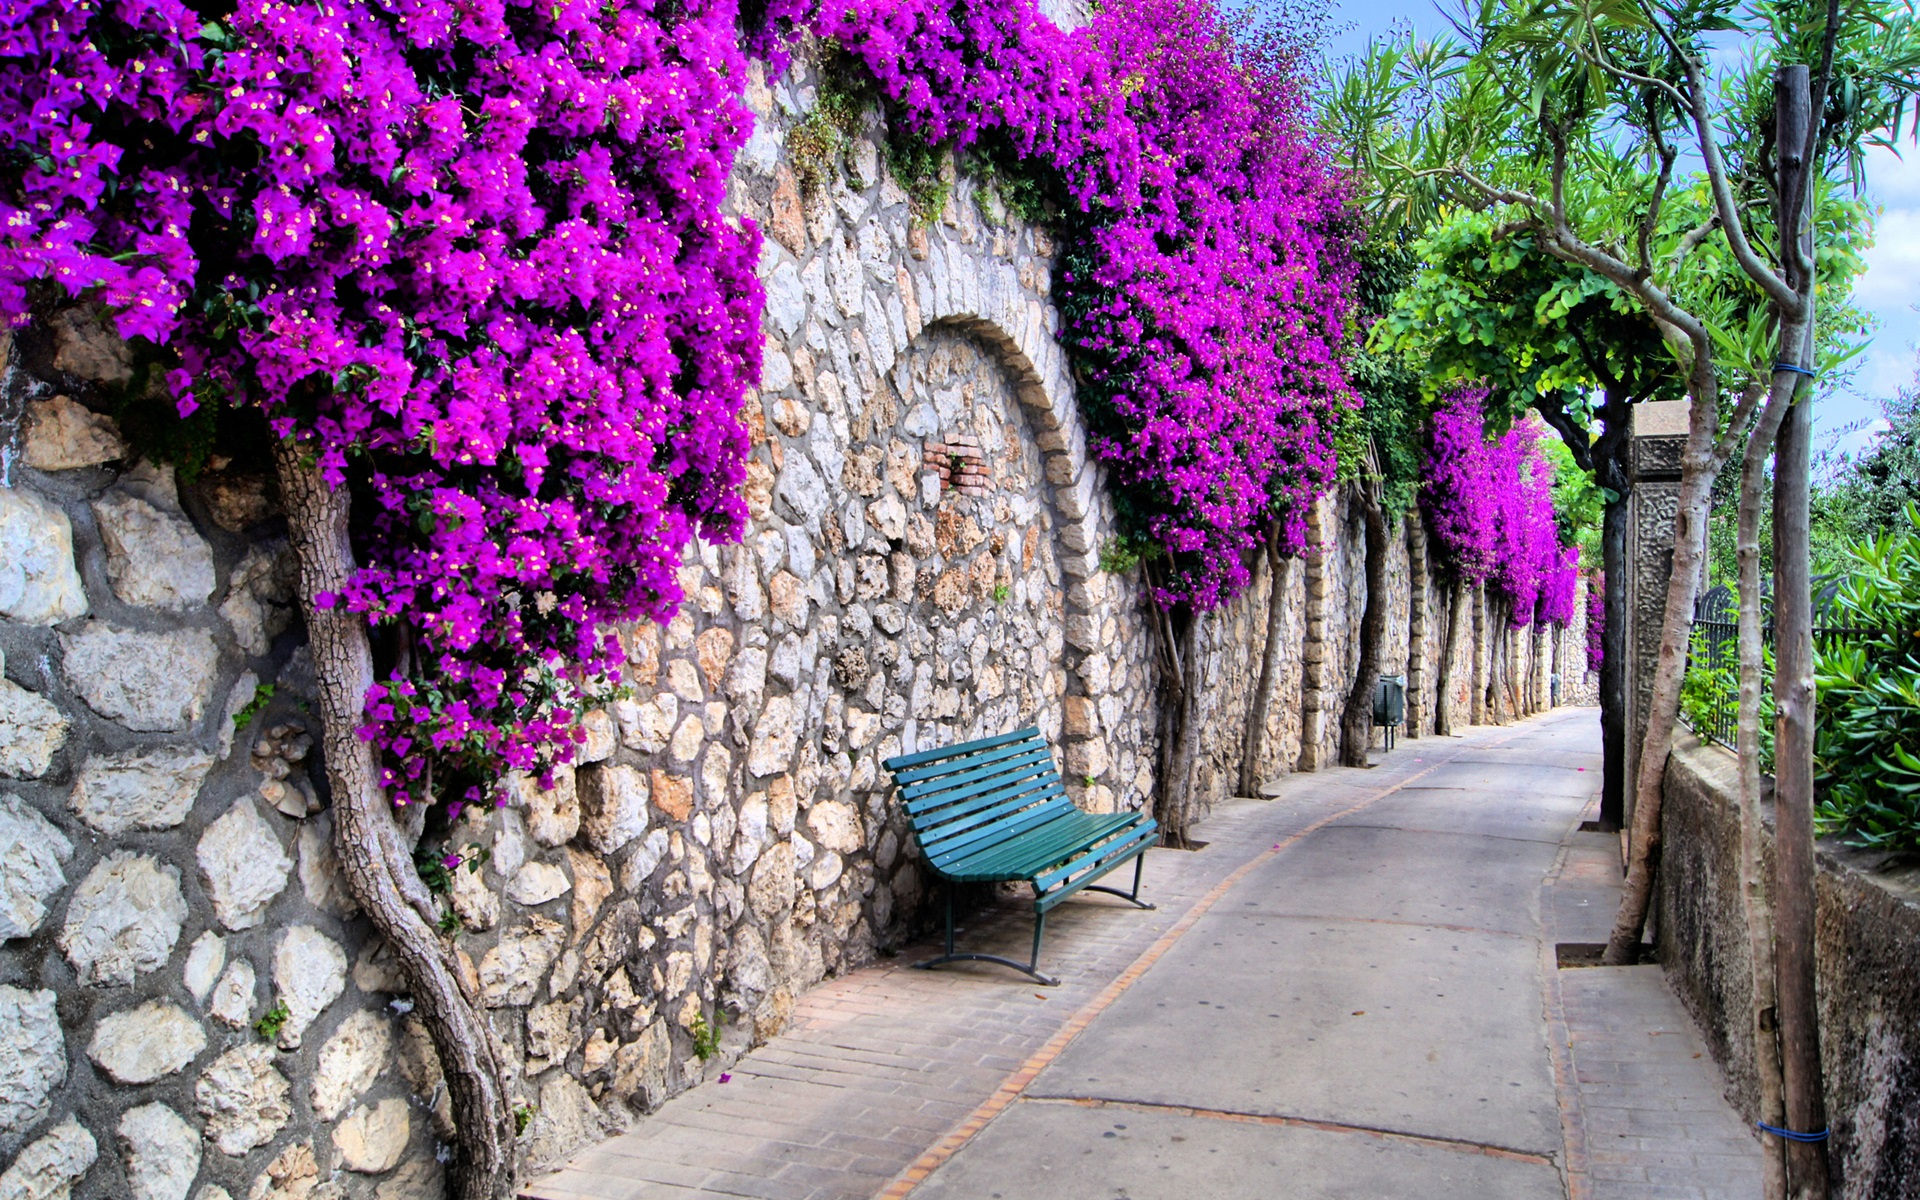 //Ciudad// Beautiful-city-Italy-streets-trees-flowers-benches_1920x1200